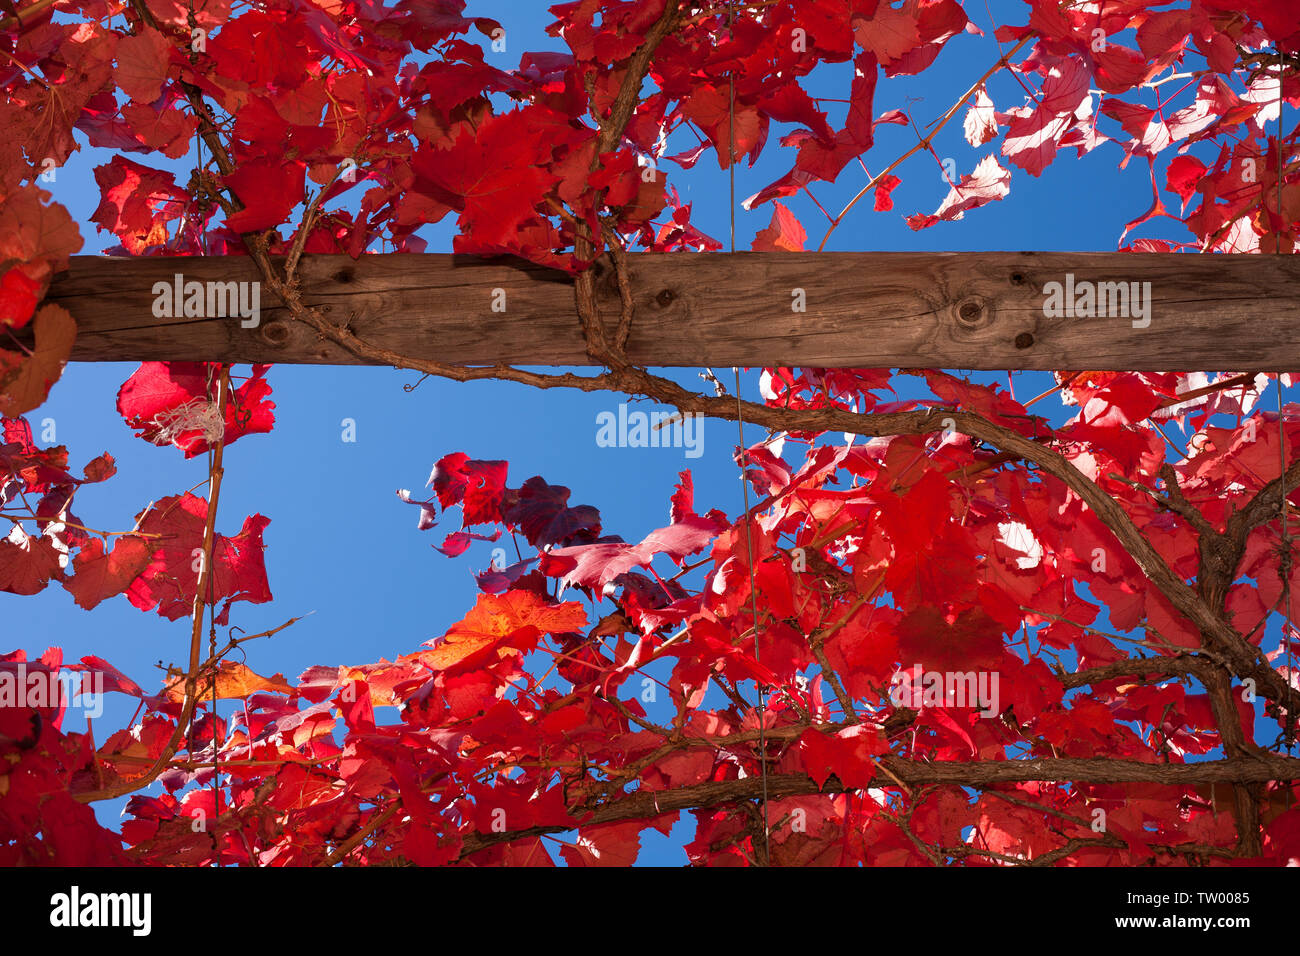 Red autumn leaves of a grape vine growing on a trellis. Stock Photo